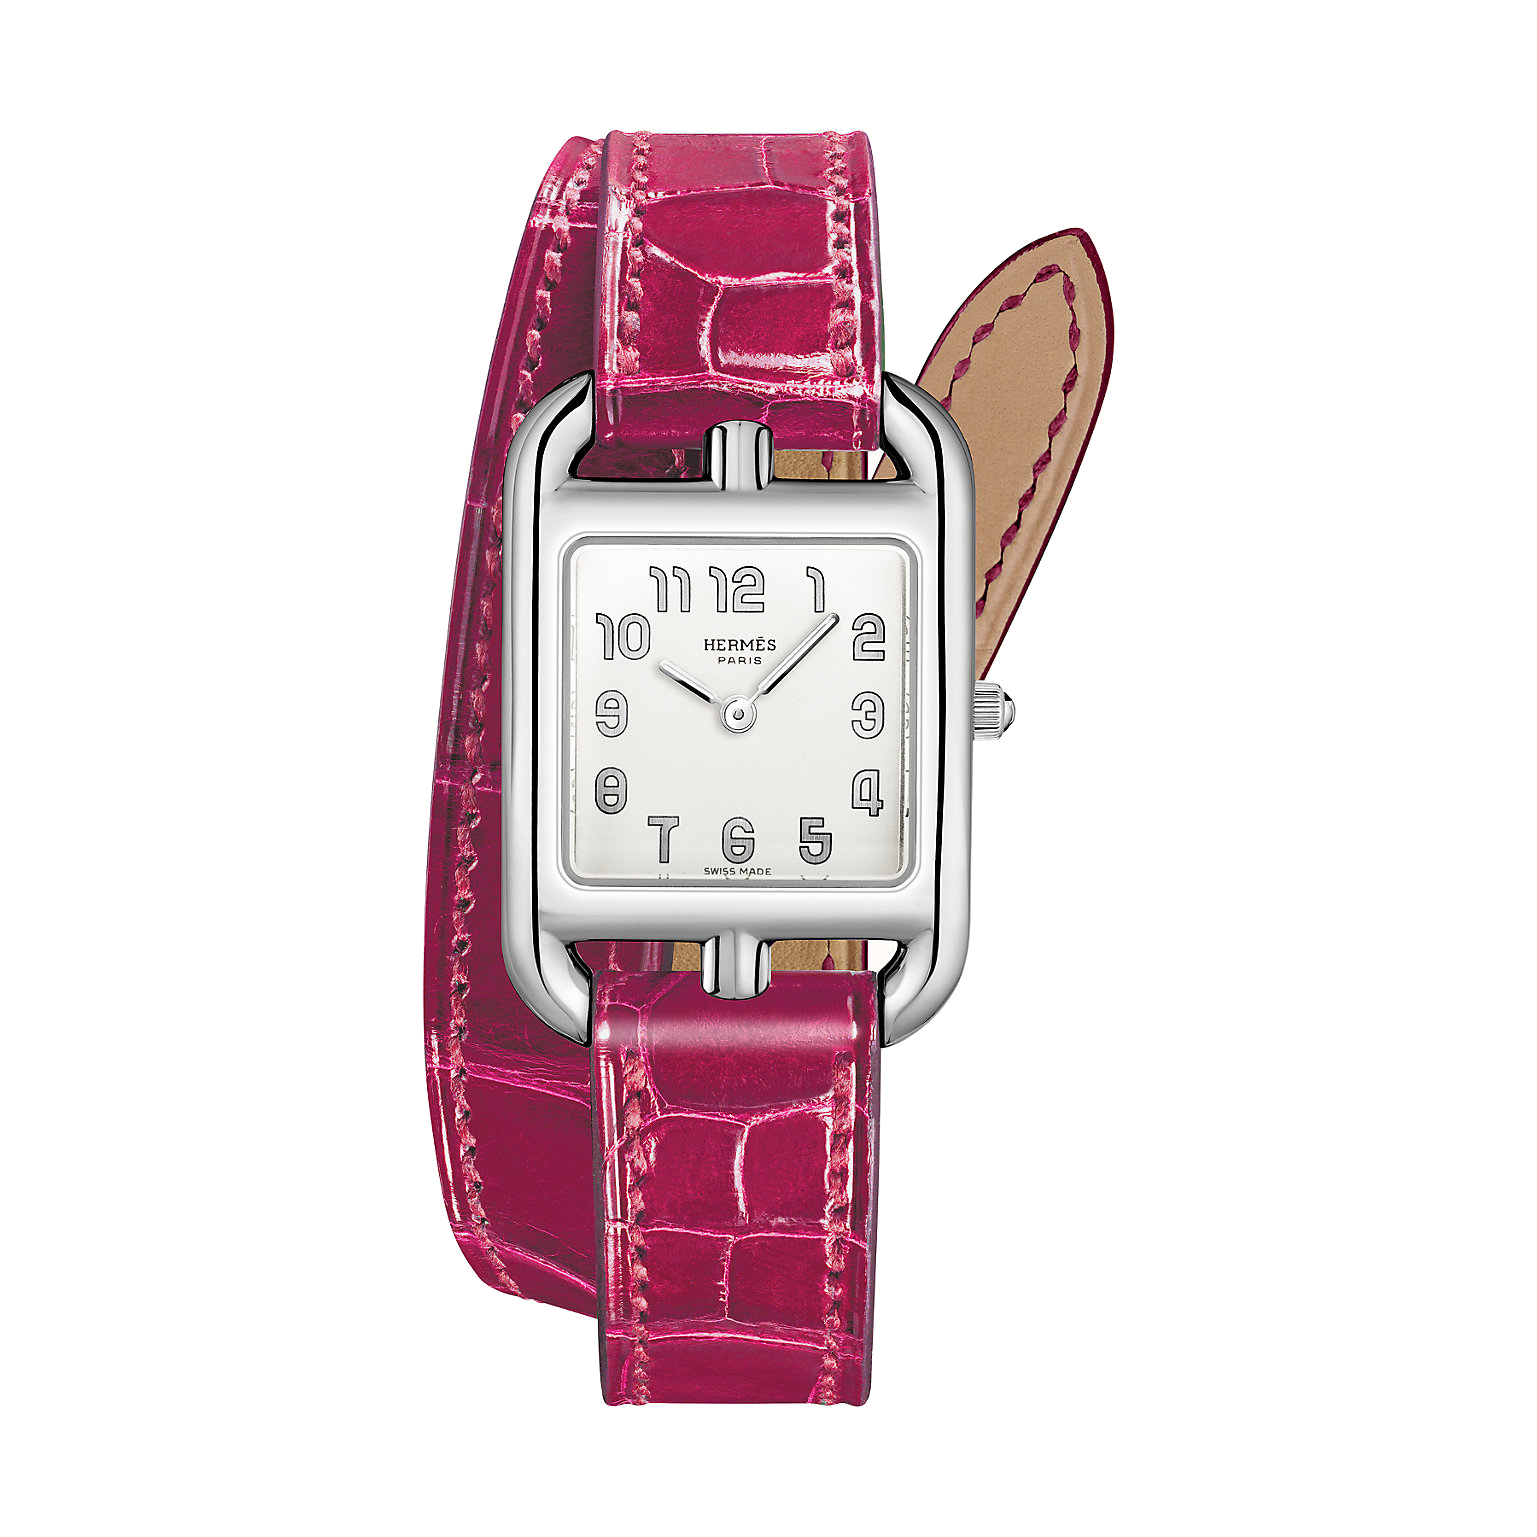 Hermès-cape-cod-23-x-23mm-Hall-of-Time-043765WW00